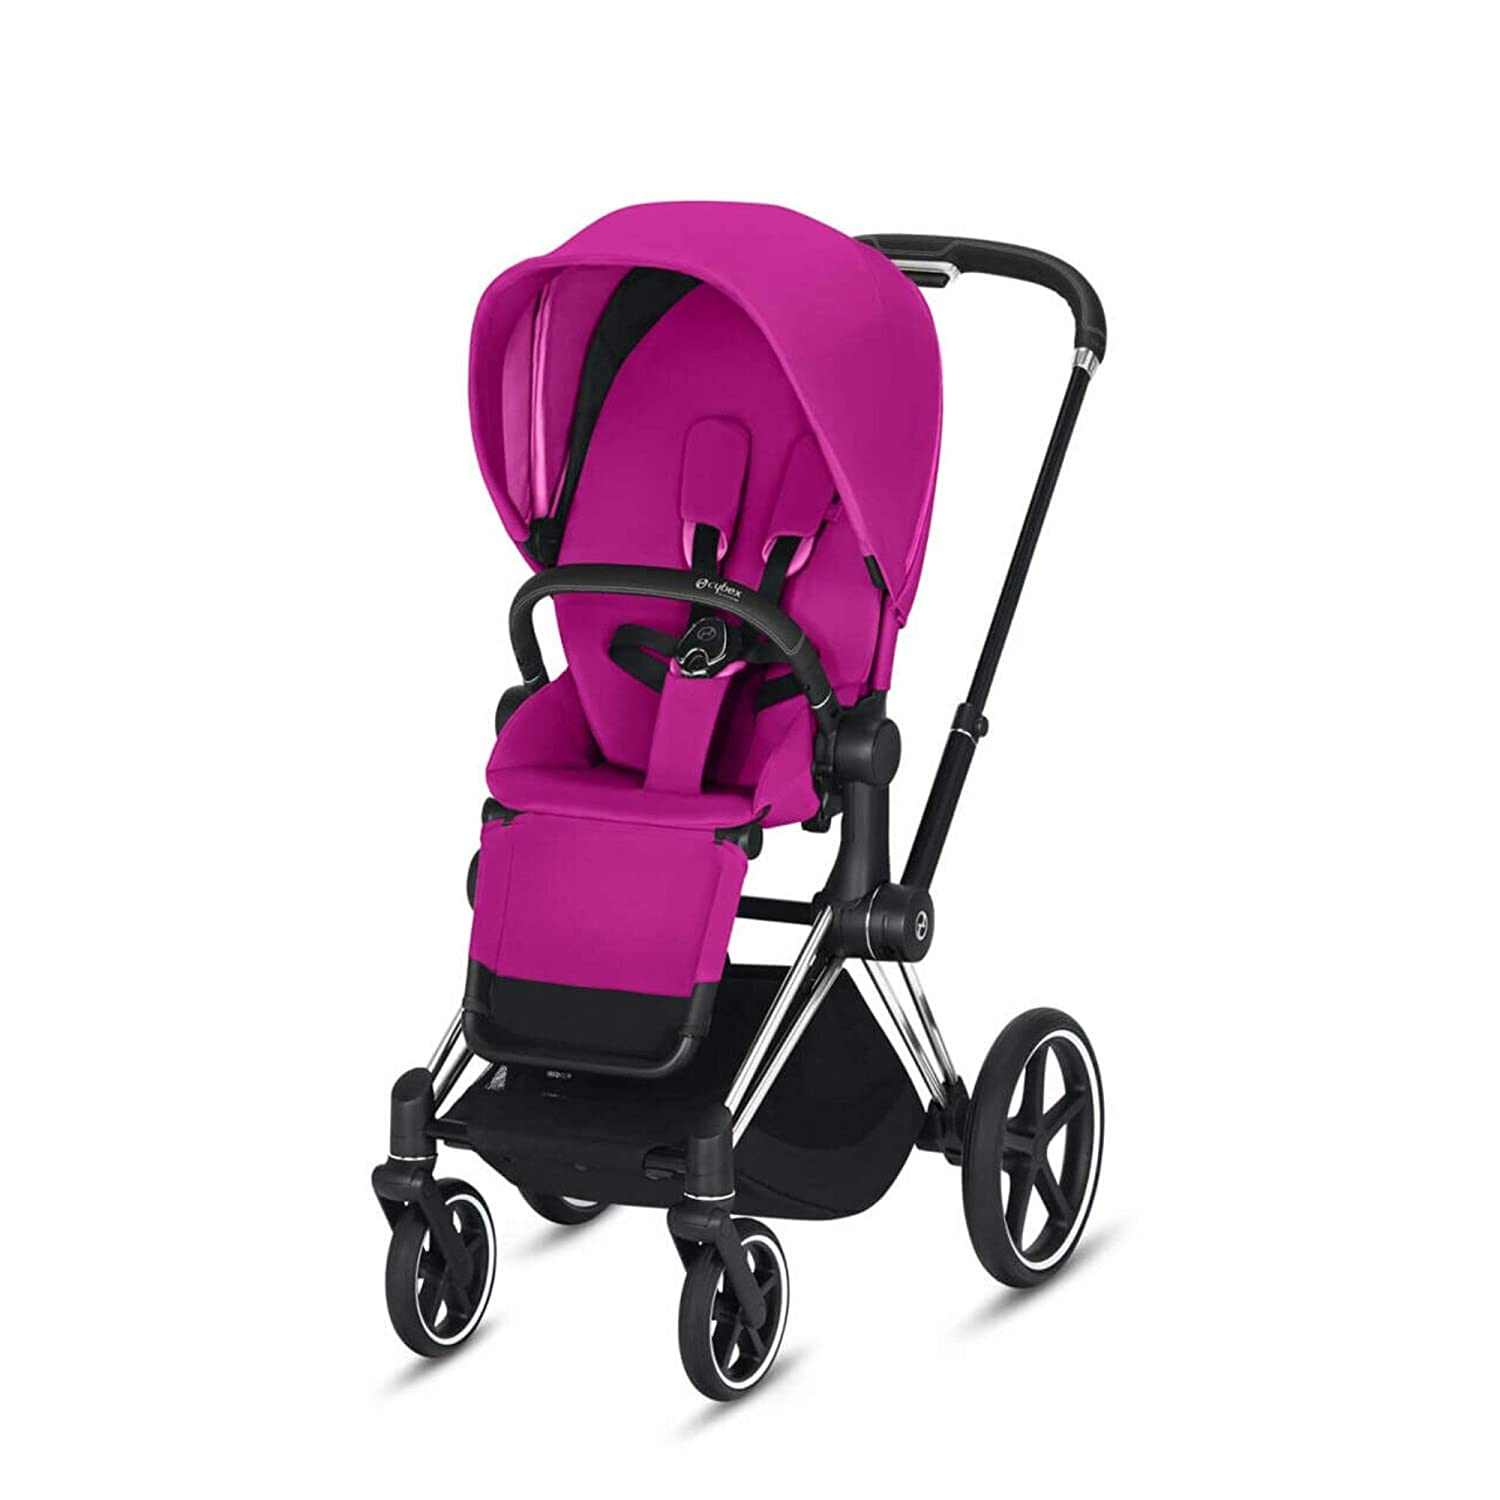 Cybex Priam 3 Complete Stroller, One-Hand Compact Fold, Reversible Seat, Smooth Ride All-Wheel Suspension, Extra Storage, Adjustable Leg Rest, Fancy Pink with Chrome/Black Frame